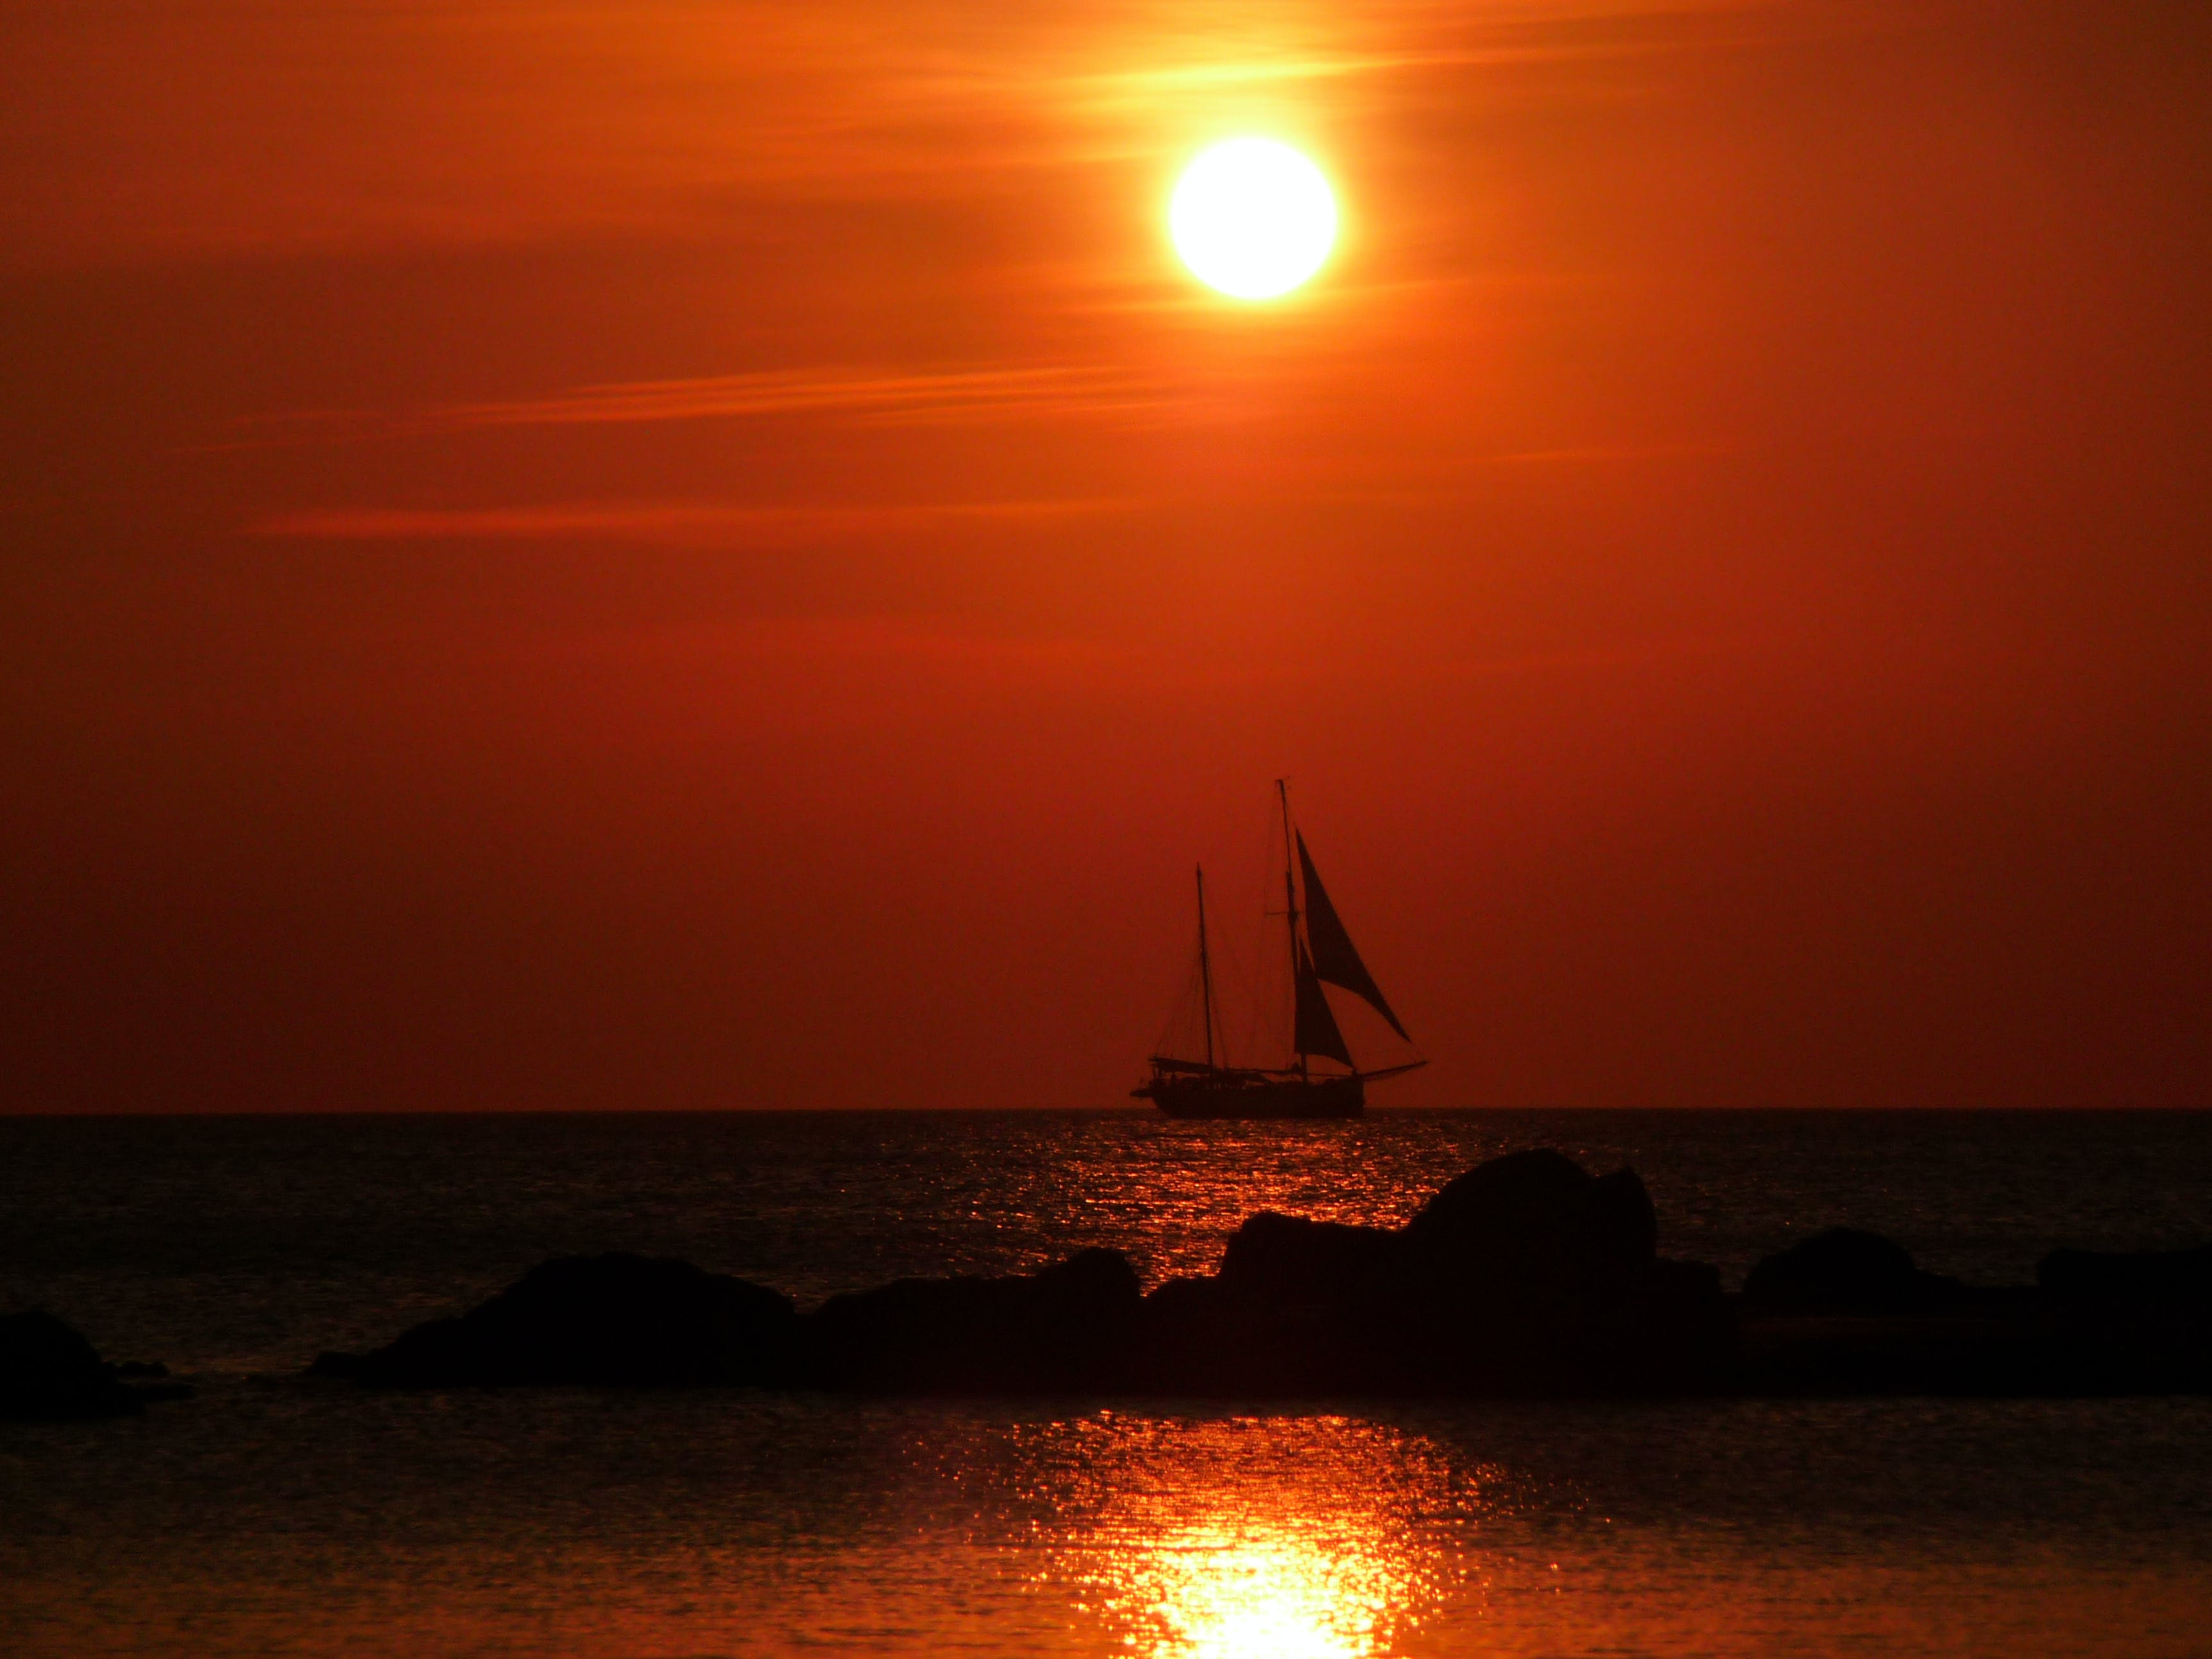 Sailboat on the Ocean during Sunset